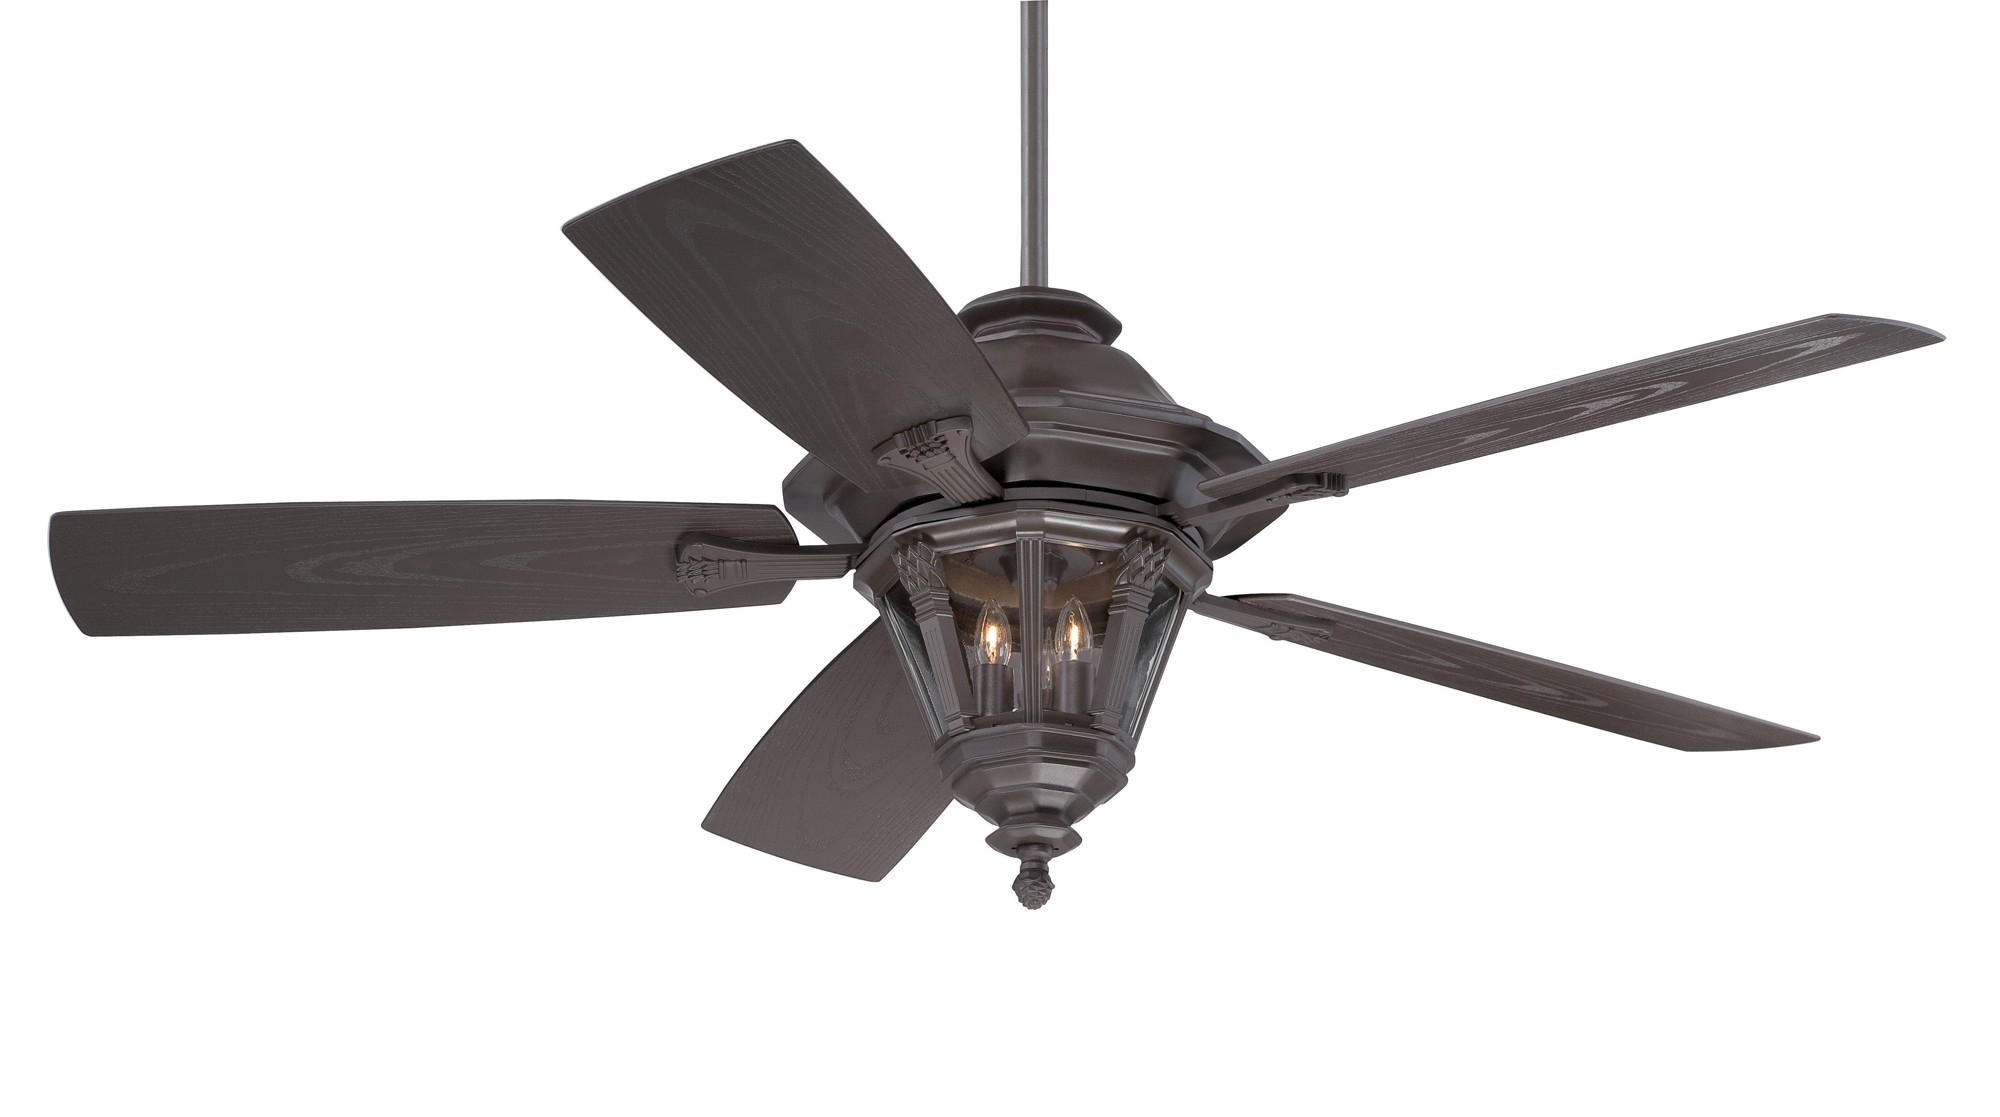 Top 10 Unique Outdoor Ceiling Fans 2018 Warisan Lighting, Best Throughout Well Liked Large Outdoor Ceiling Fans With Lights (View 17 of 20)